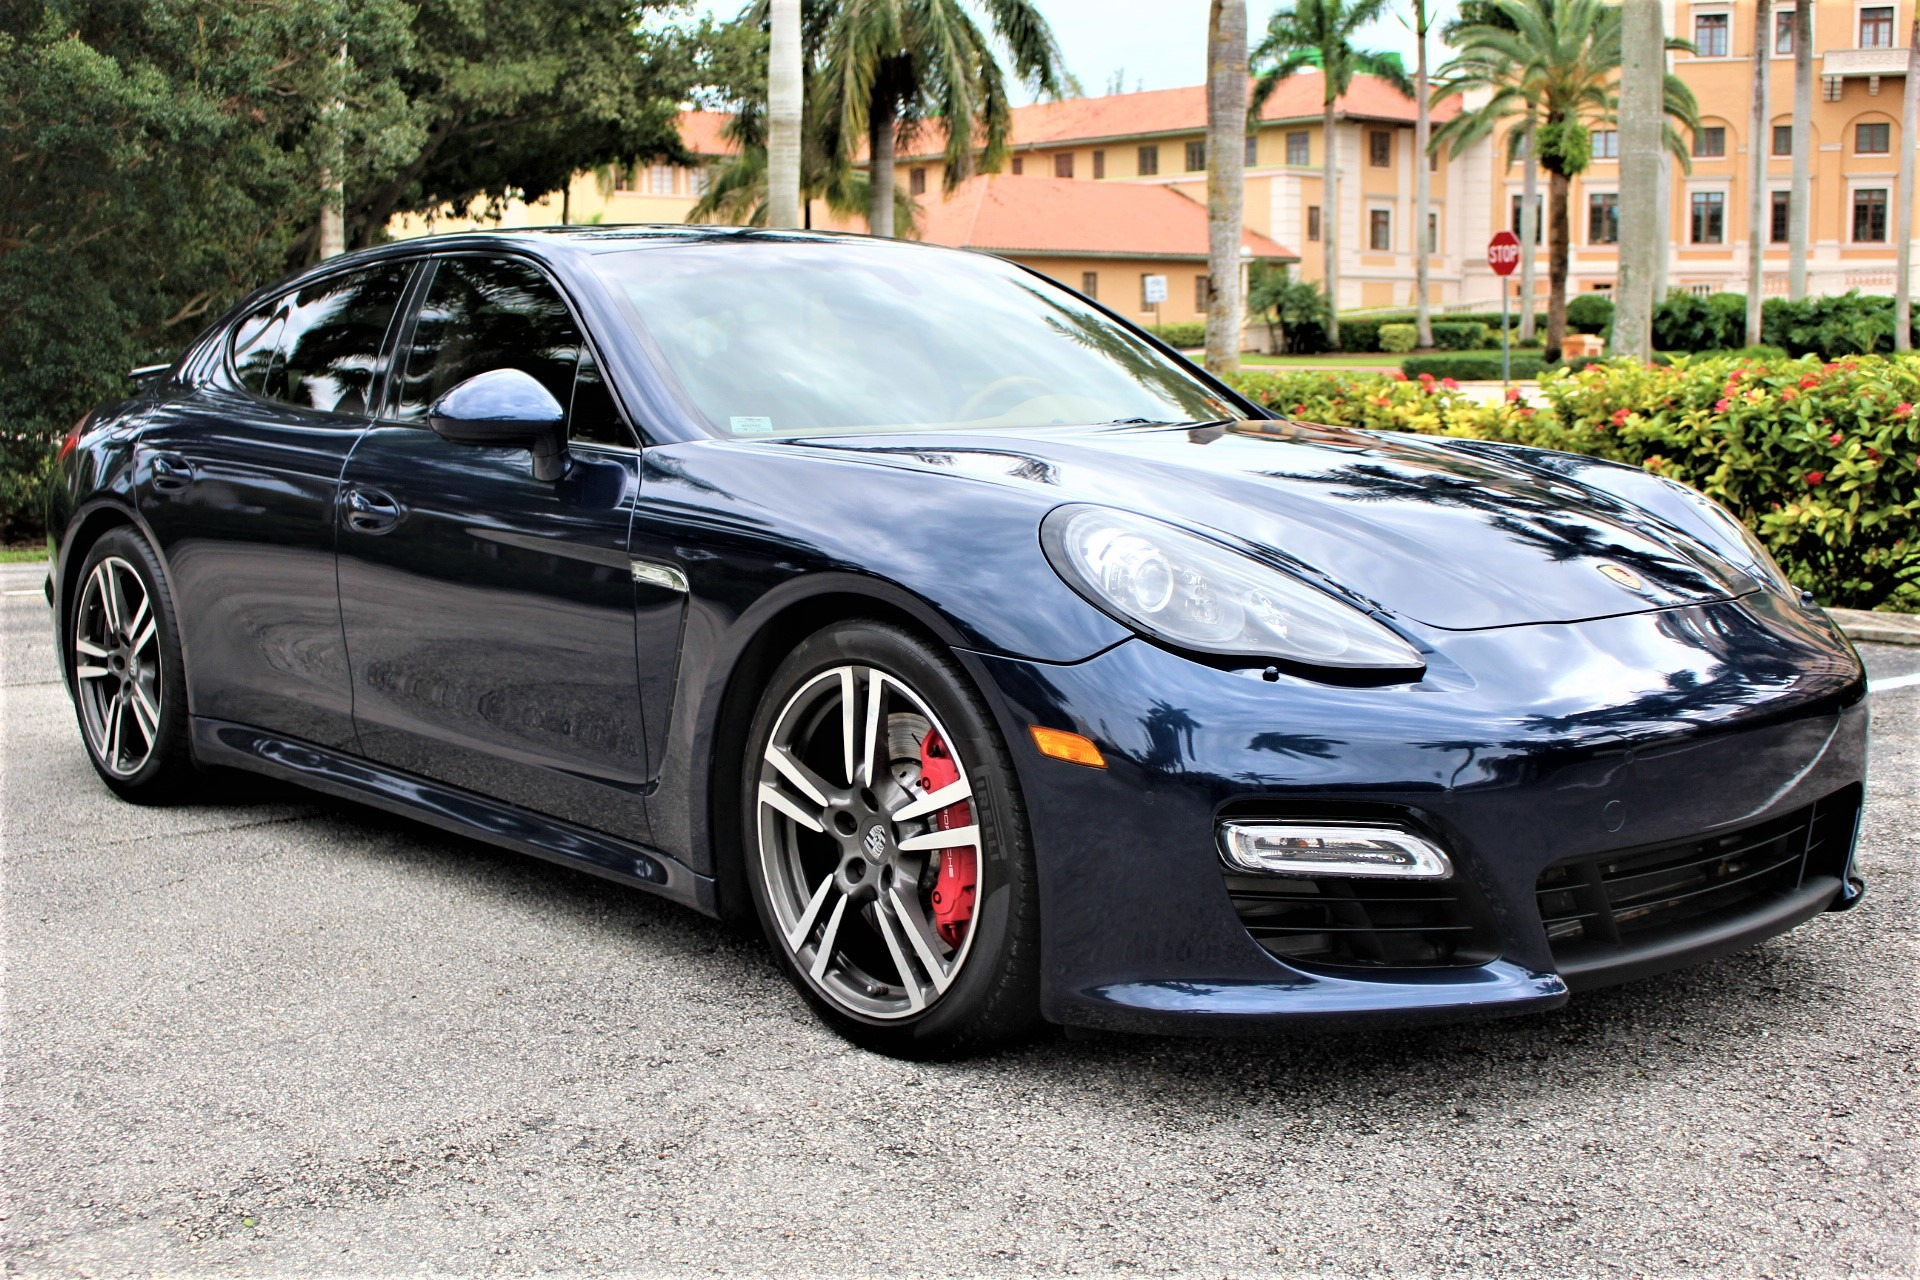 Used 2013 Porsche Panamera GTS for sale $39,950 at The Gables Sports Cars in Miami FL 33146 4